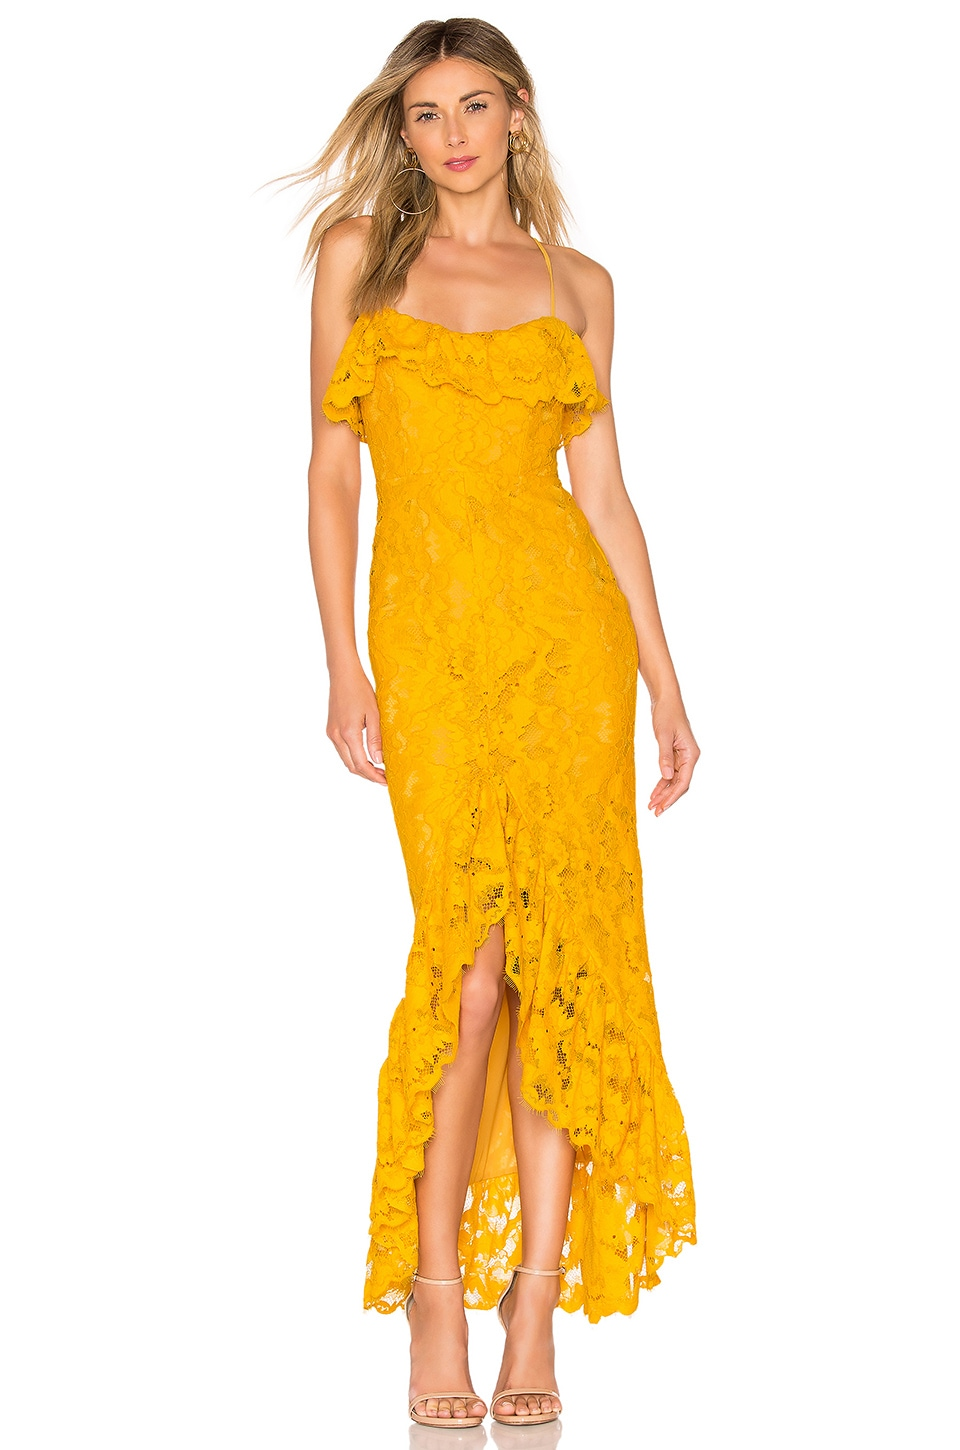 MAJORELLE Rose Water Lace Gown in Gold Yellow